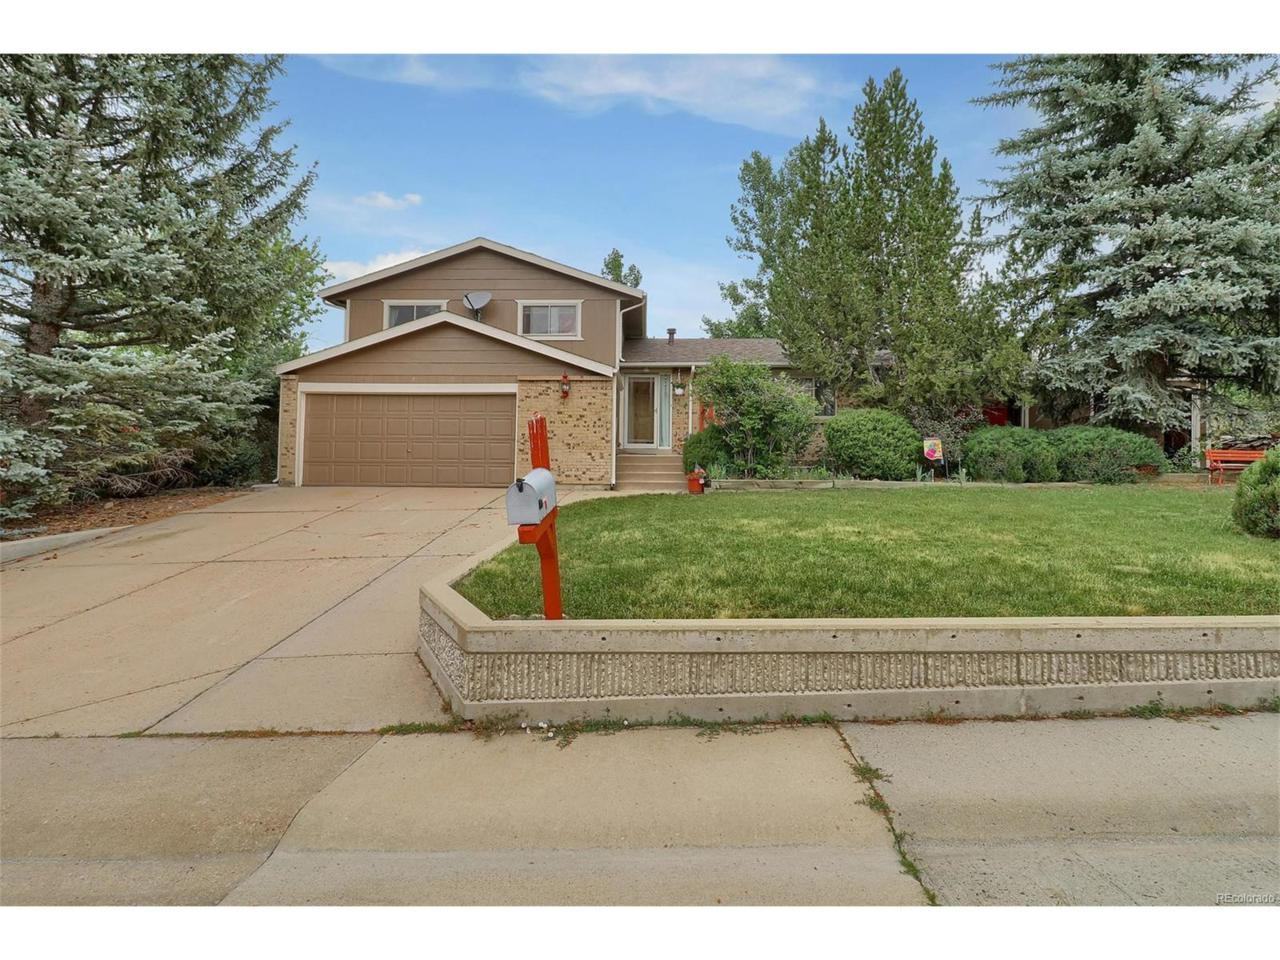 203 Elm Avenue, Castle Rock, CO 80104 (MLS #8665453) :: 8z Real Estate